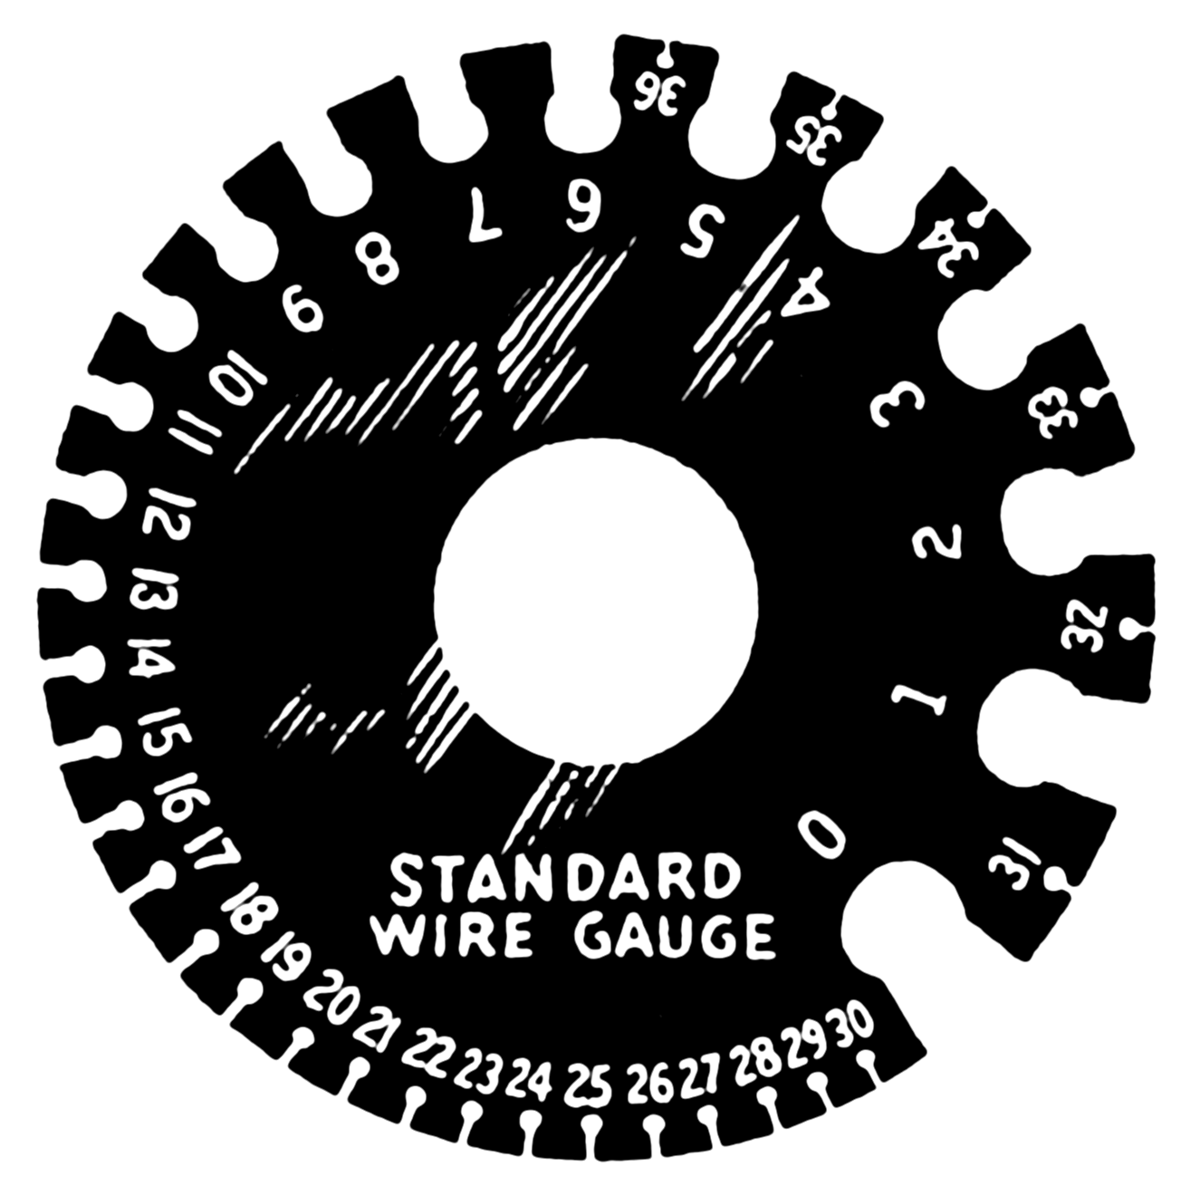 Standard wire gauge wikipdia greentooth Image collections